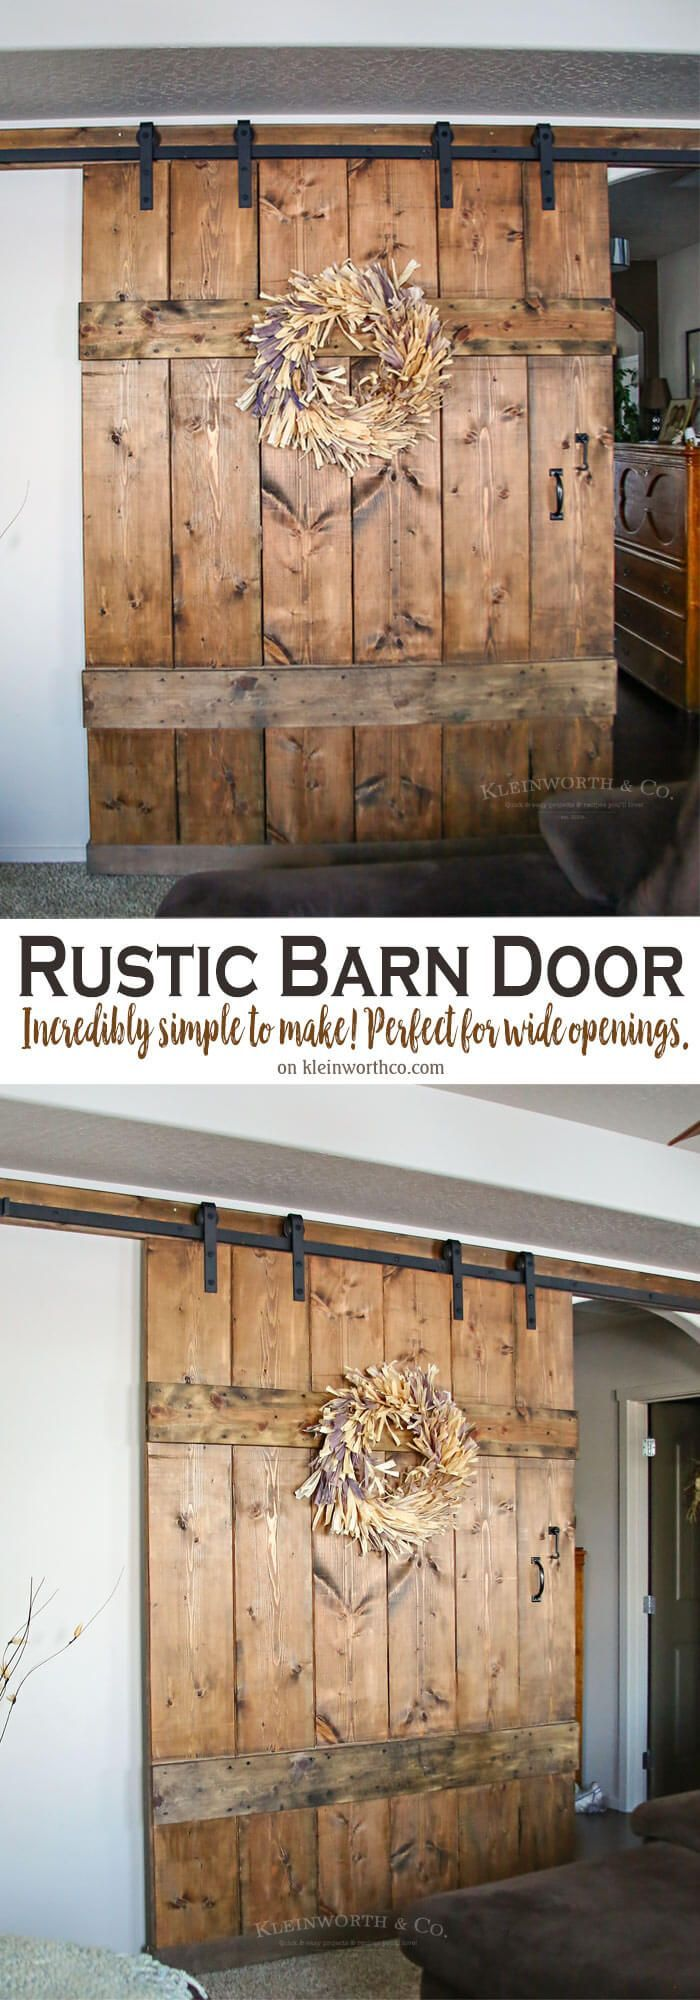 Wide rustic barn door is feet wide u made for extra large doorways